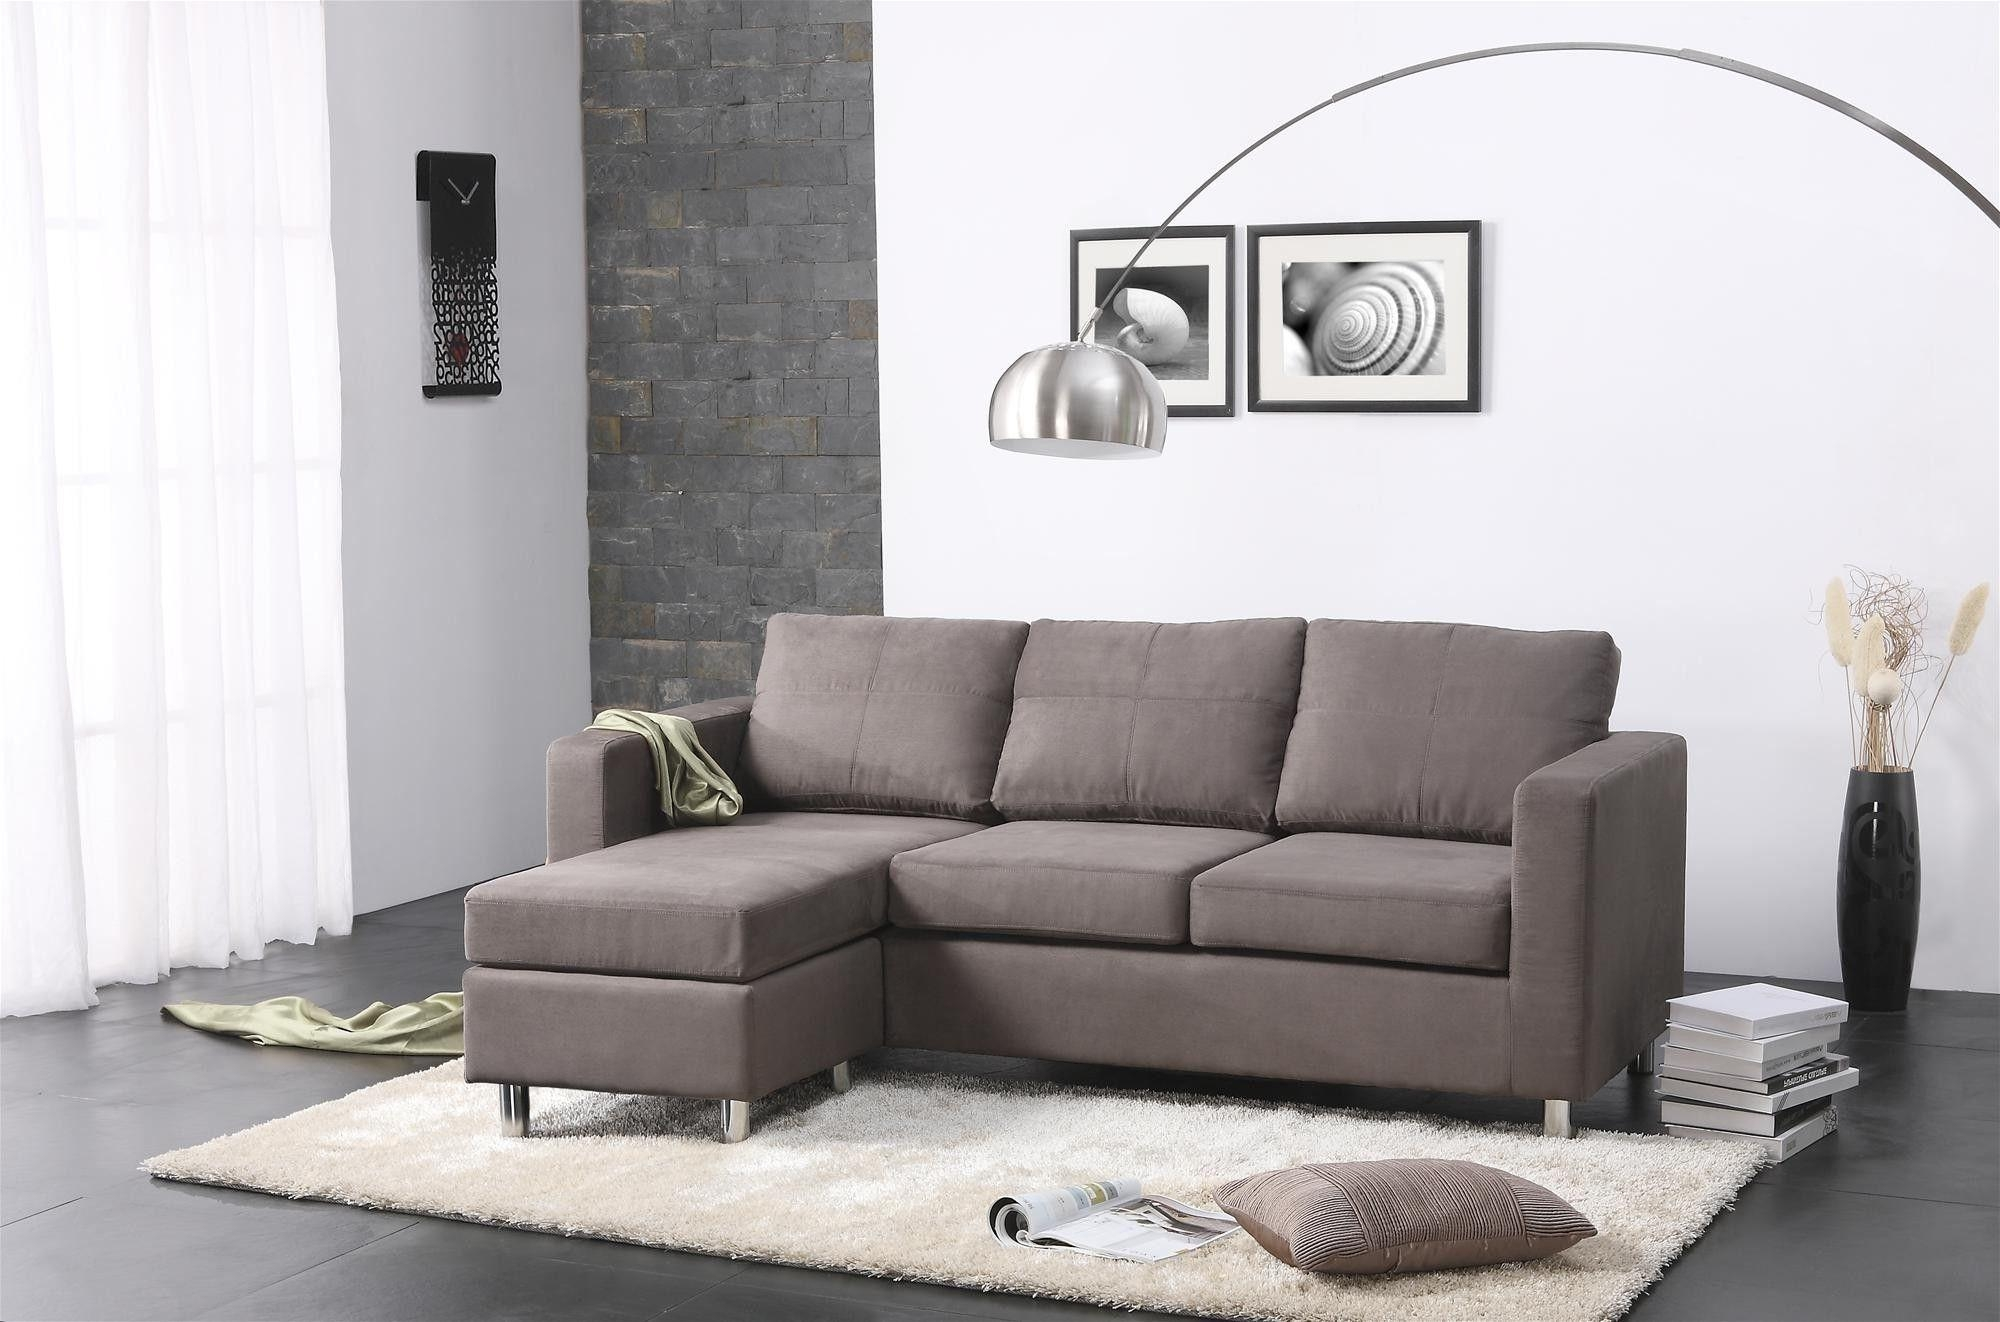 Furniture: Leather Sectional Sofas Cheap Plus Rug And Black Floor With Floor Lamp For Sectional Couch (Image 9 of 15)